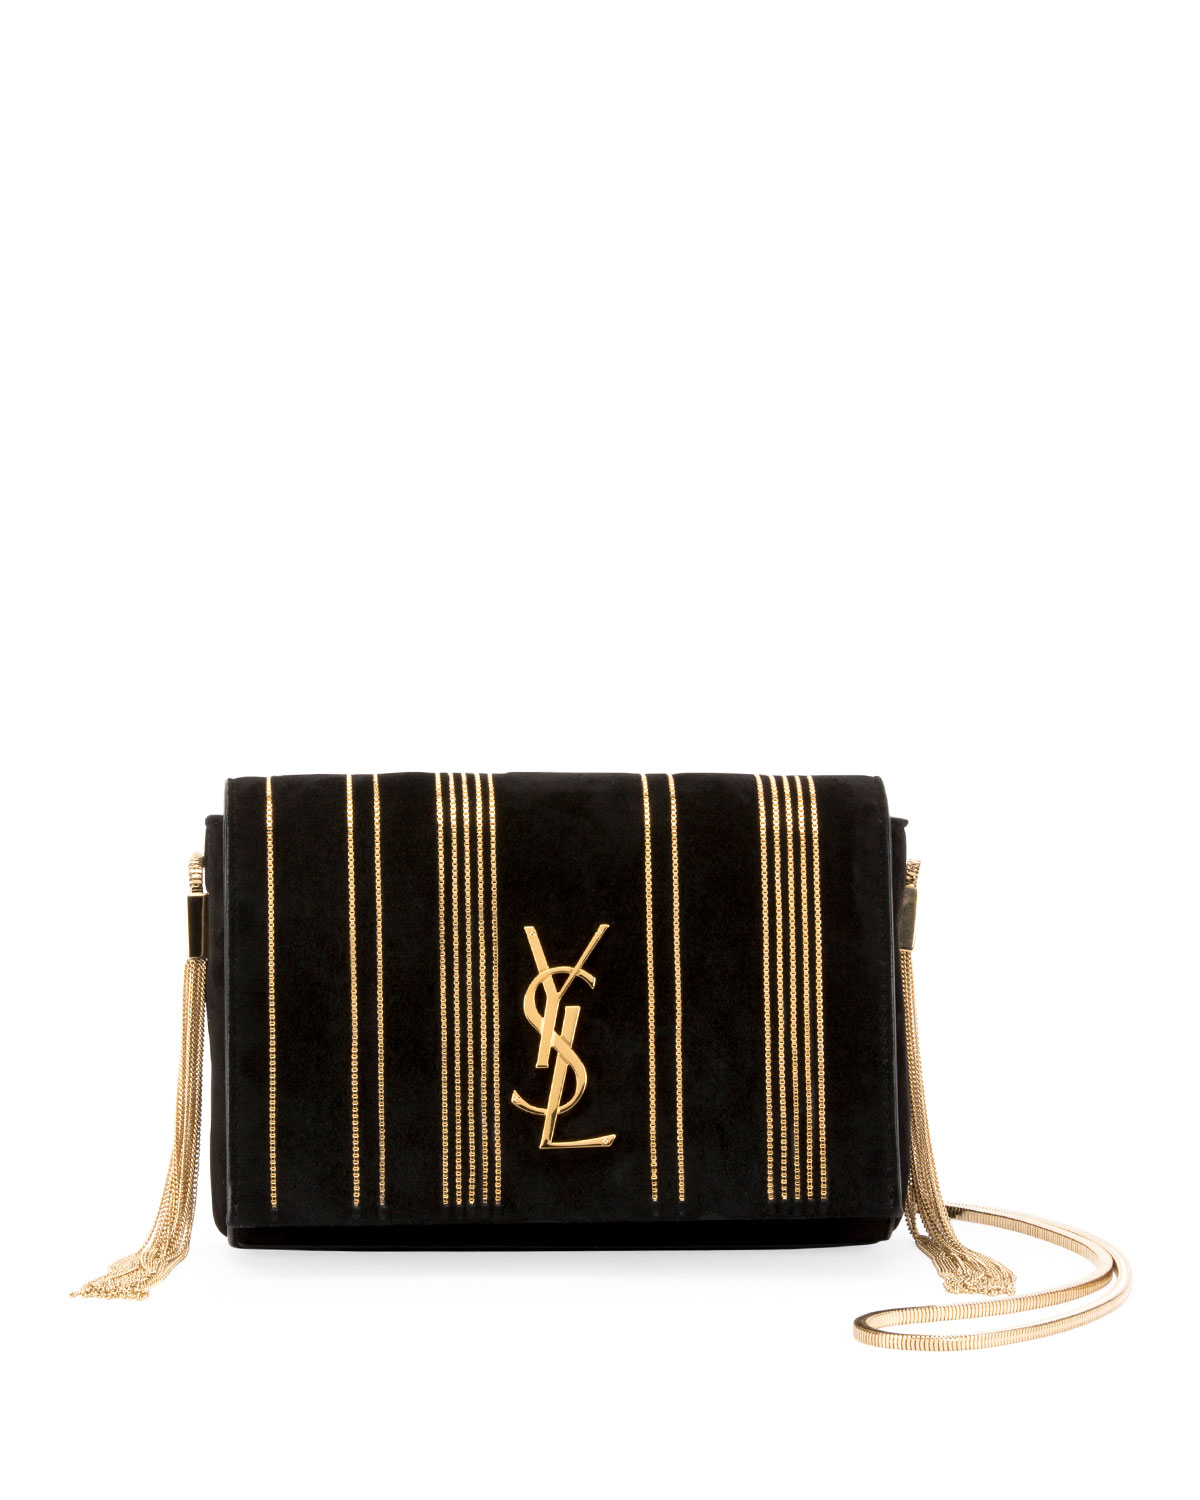 Saint LaurentKate Monogram YSL Small Suede Tassel-Side Chain Crossbody Bag 08add36ddb